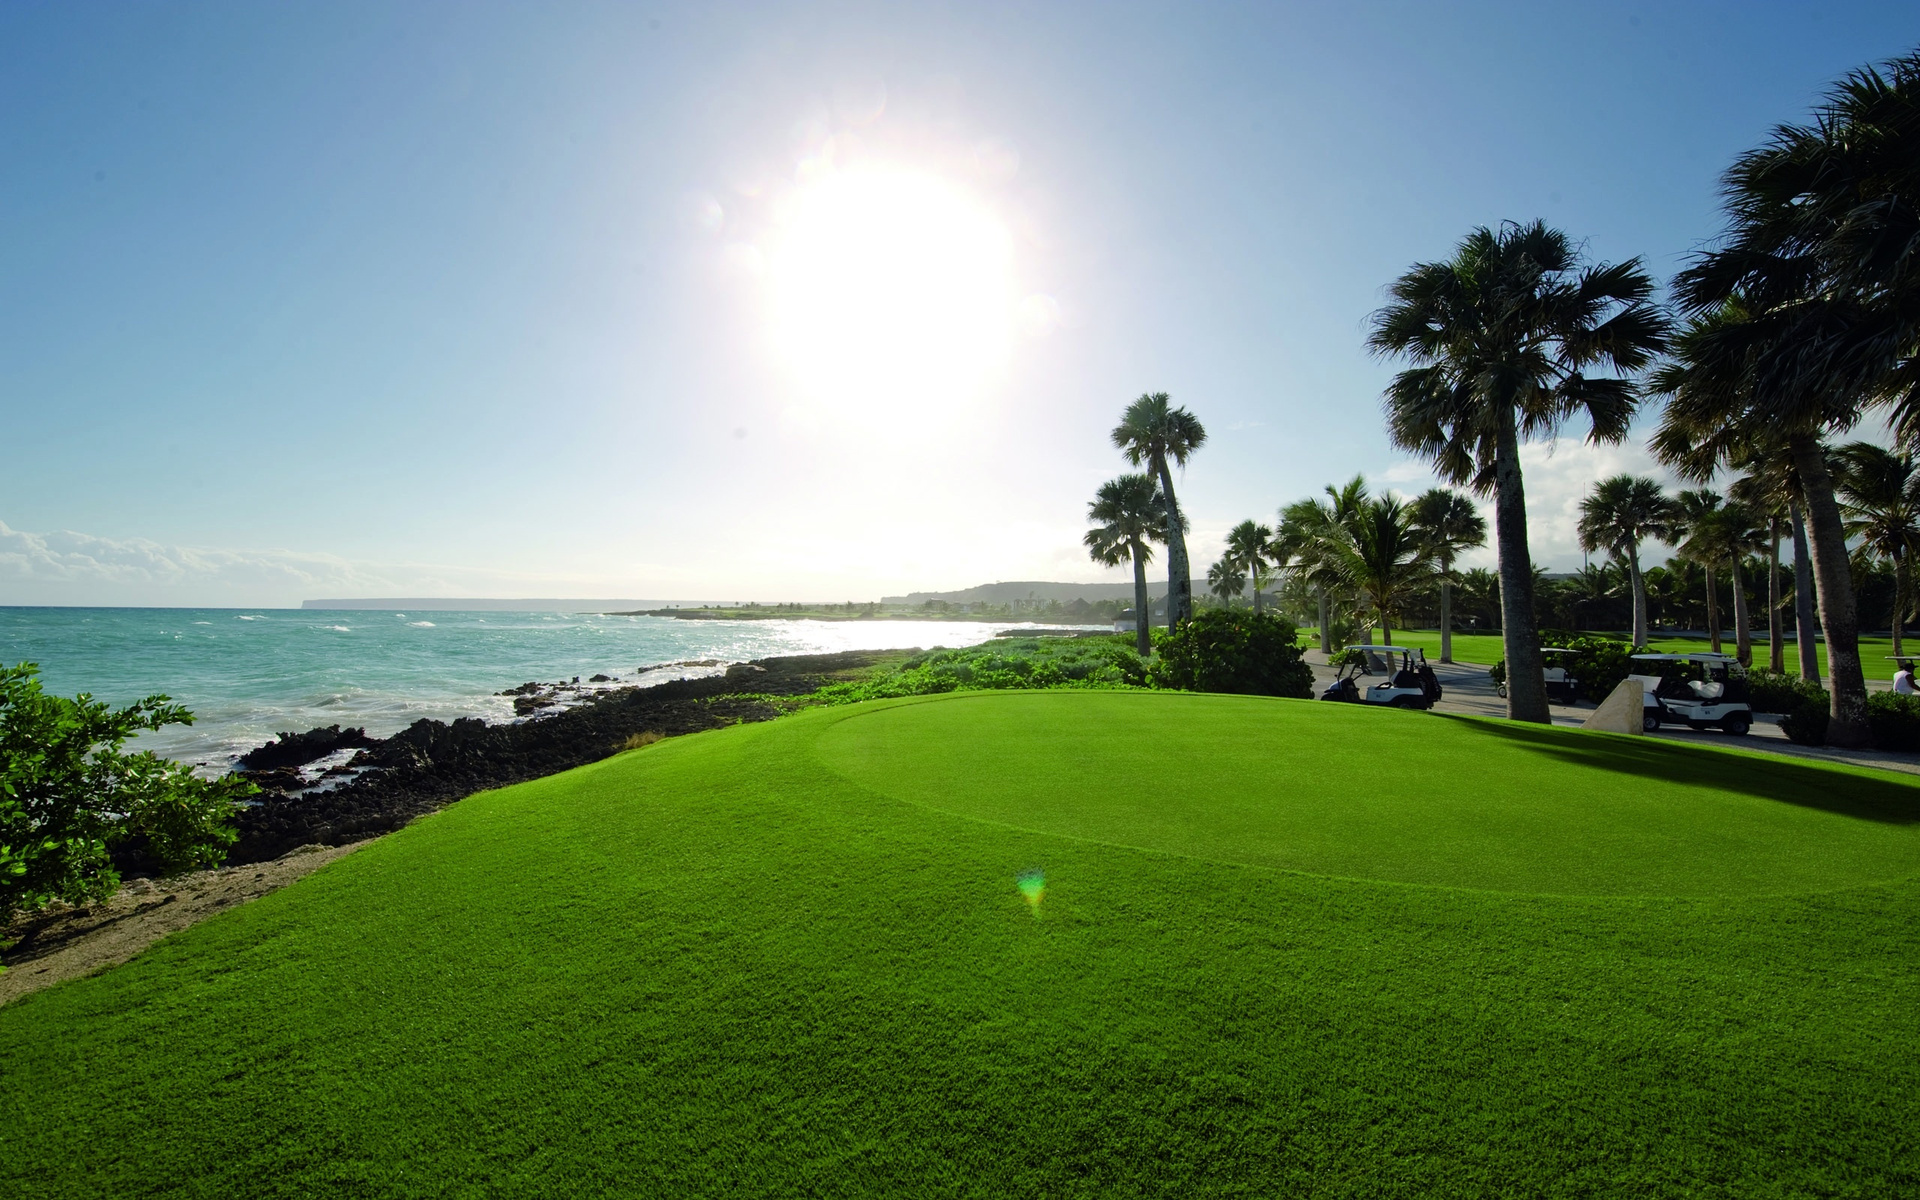 Golf course hd wallpaper background image 1920x1200 id 356083 wallpaper abyss - Golf wallpaper hd ...